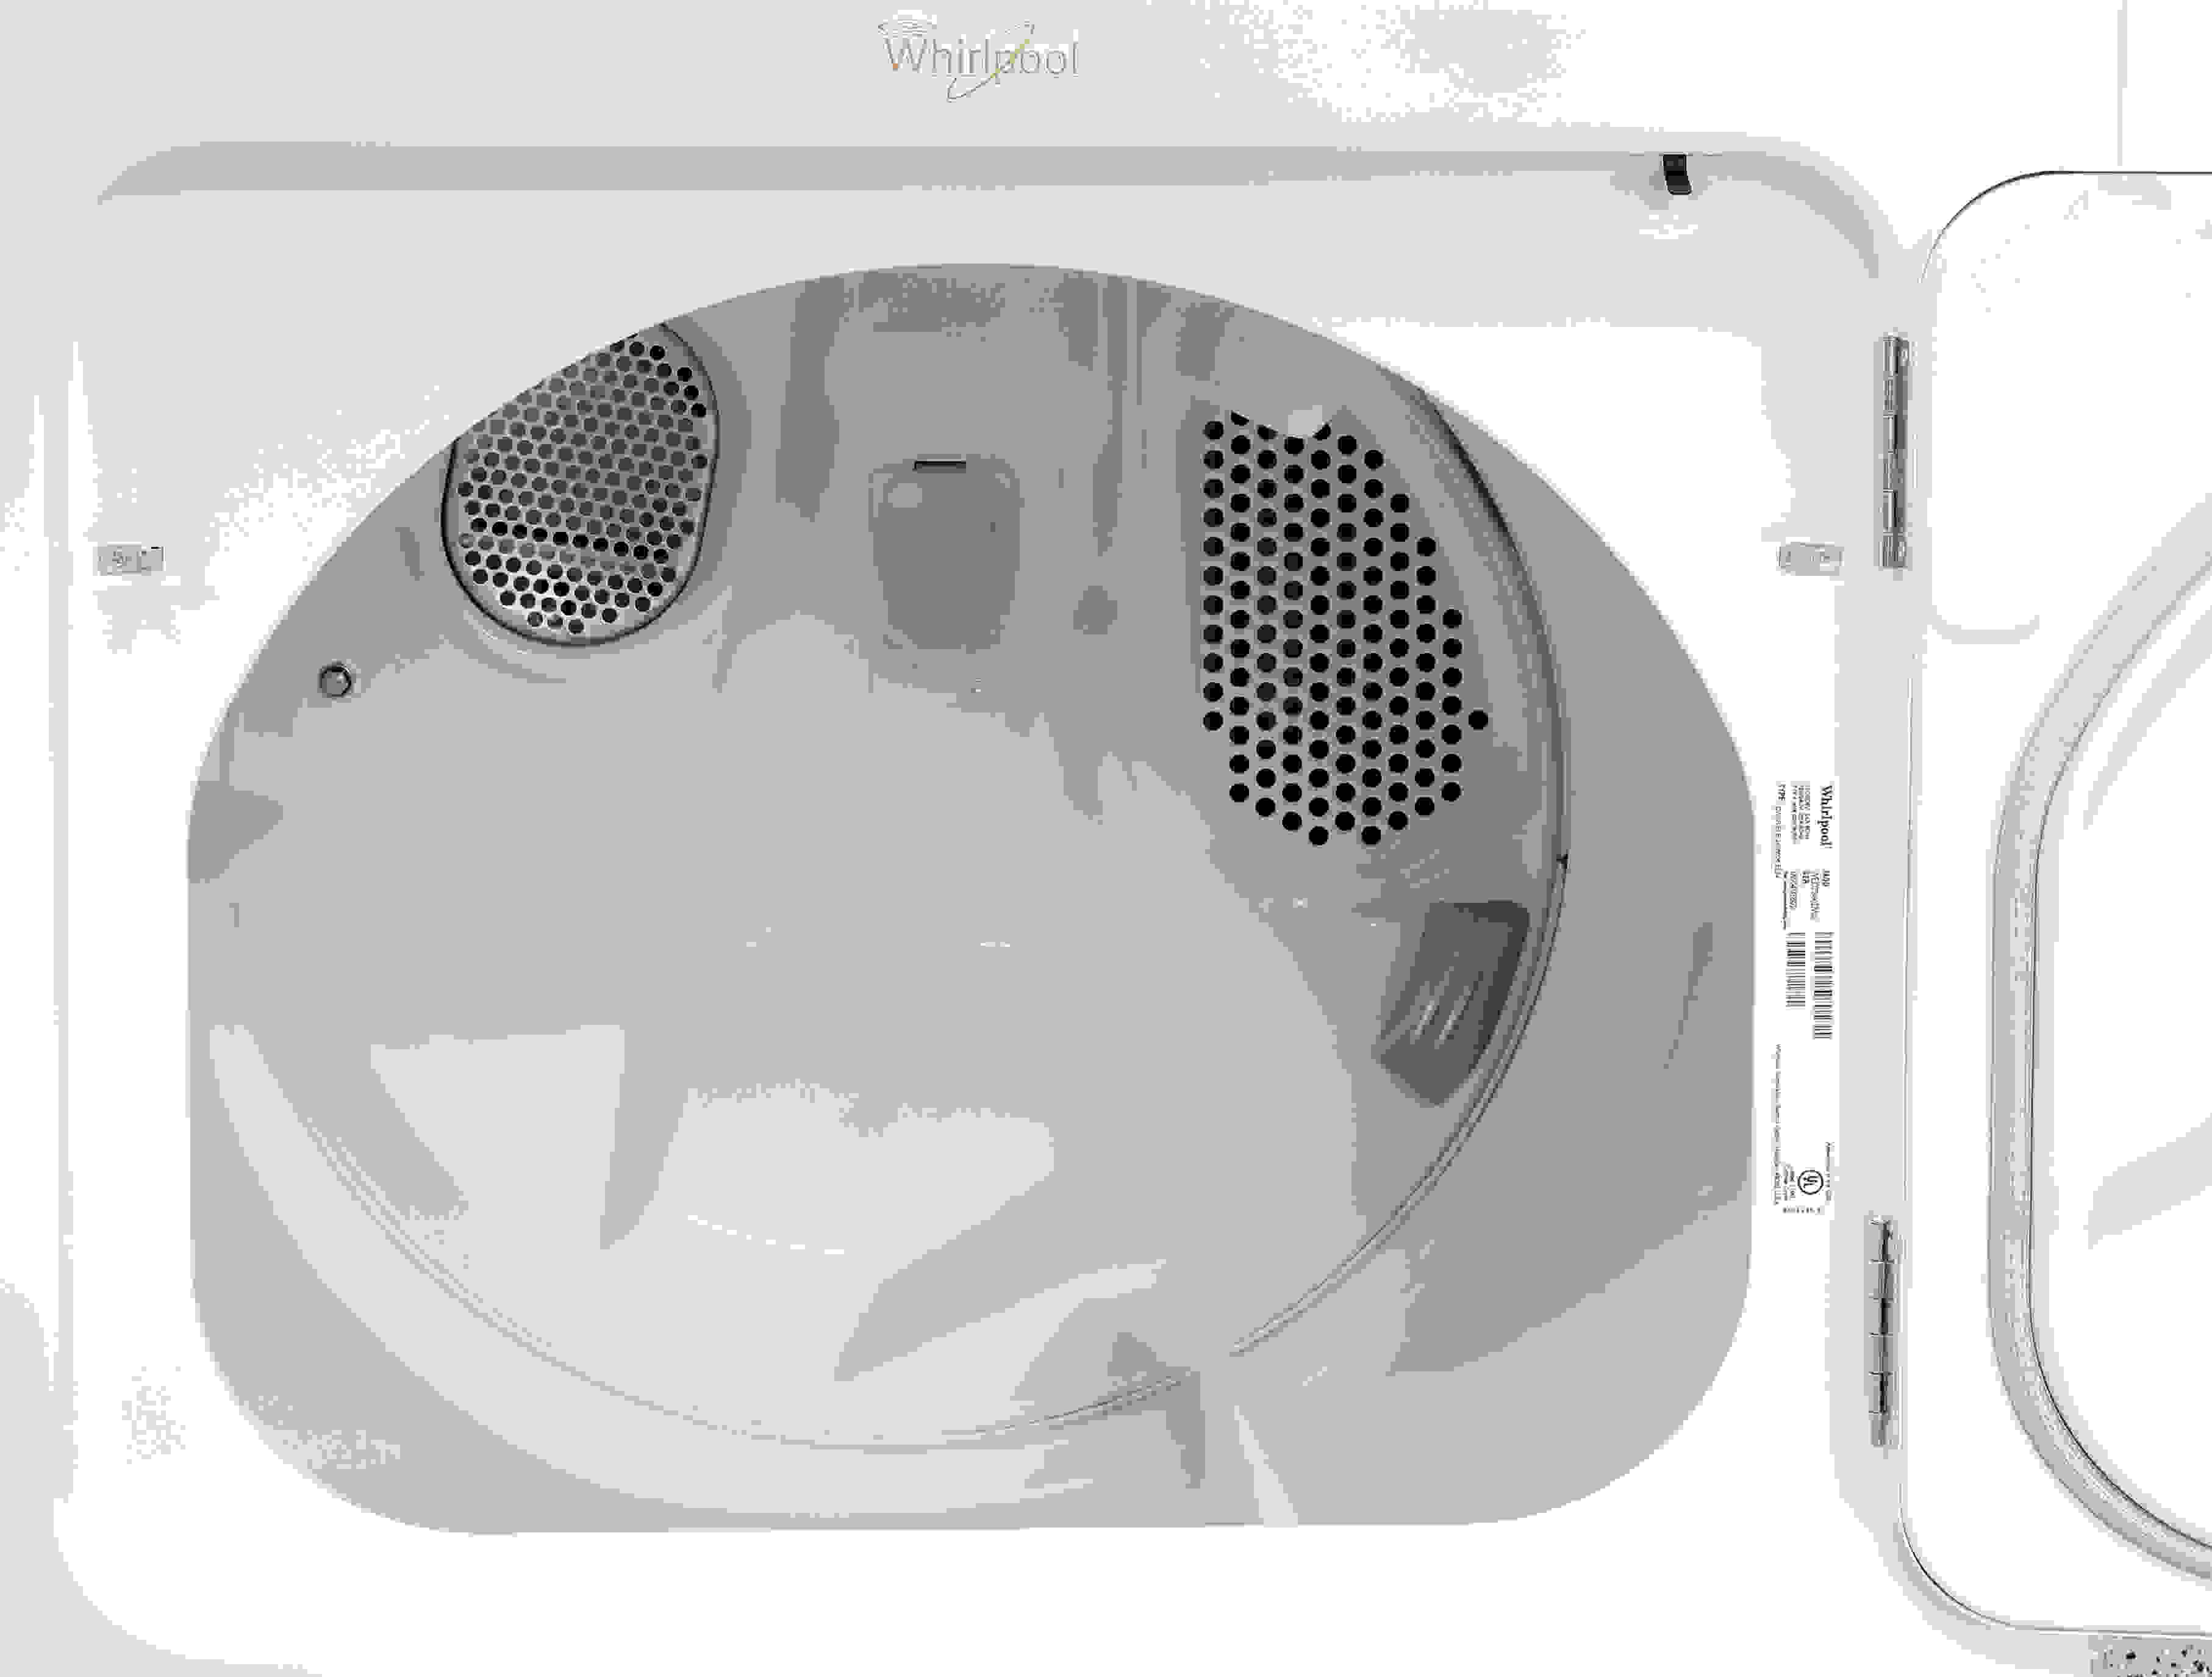 White metal interiors, like the kind found inside the Whirlpool Cabrio WED7300DW, tend to be more prone to rusting or flaking over years of use compared to stainless ones.